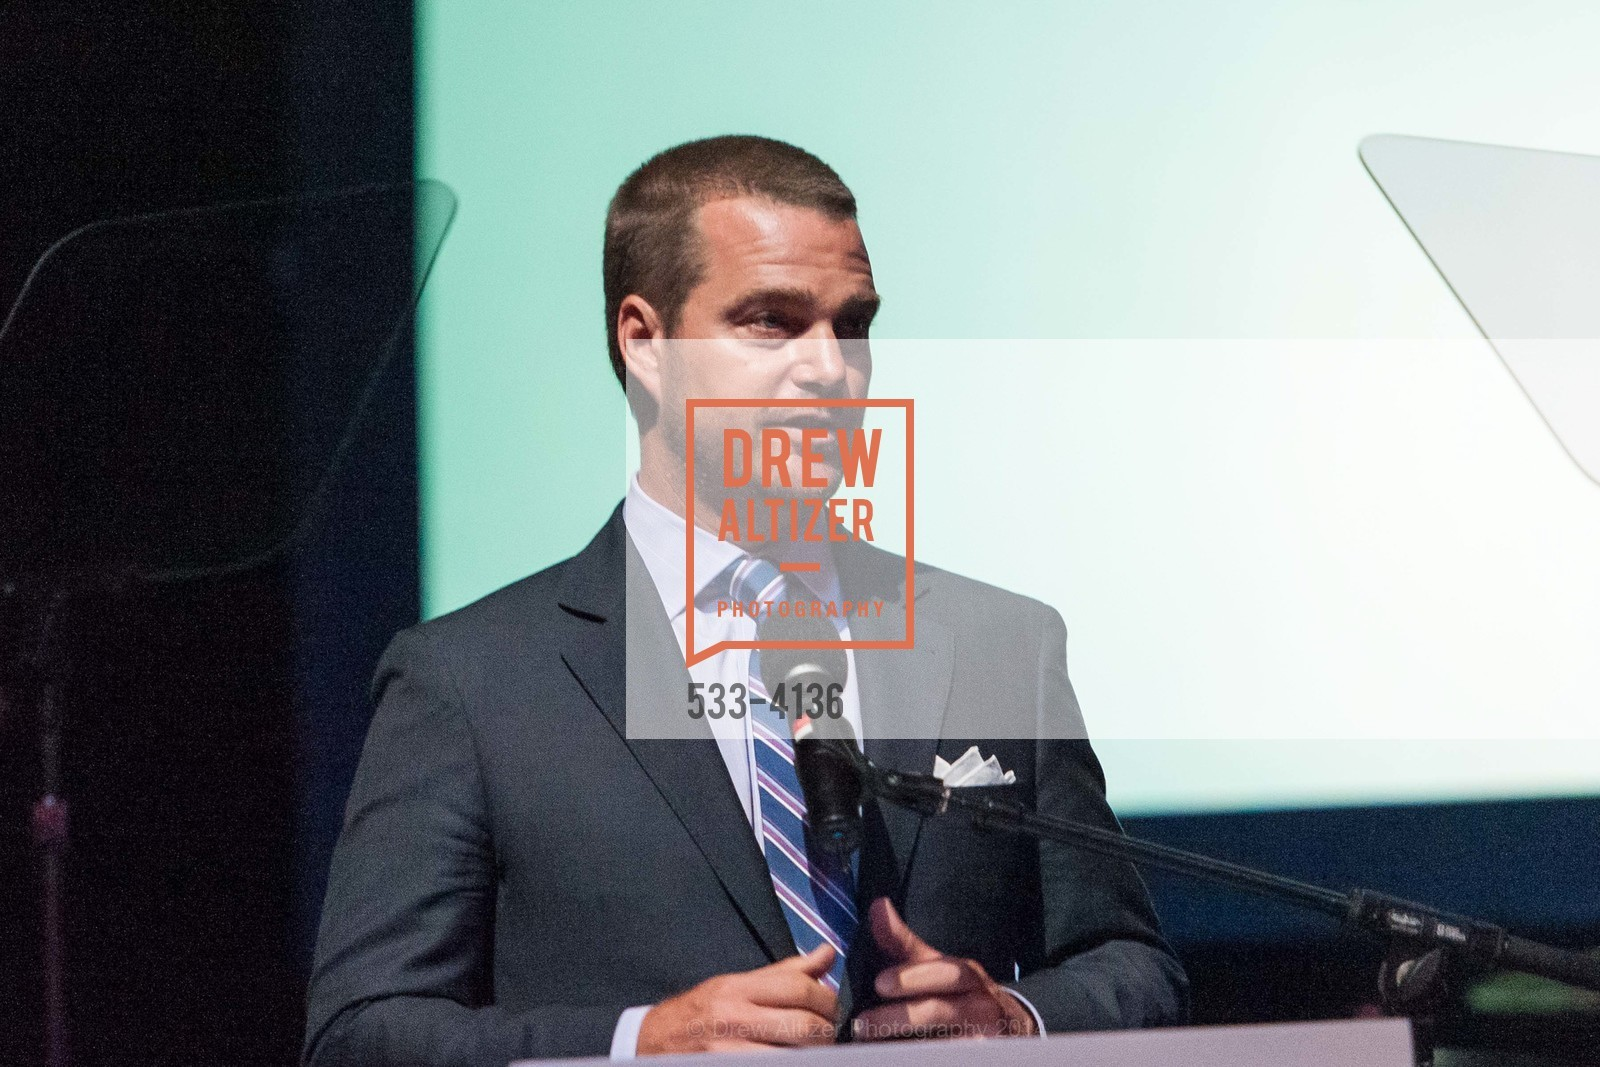 Chris O'Donnell, Photo #533-4136